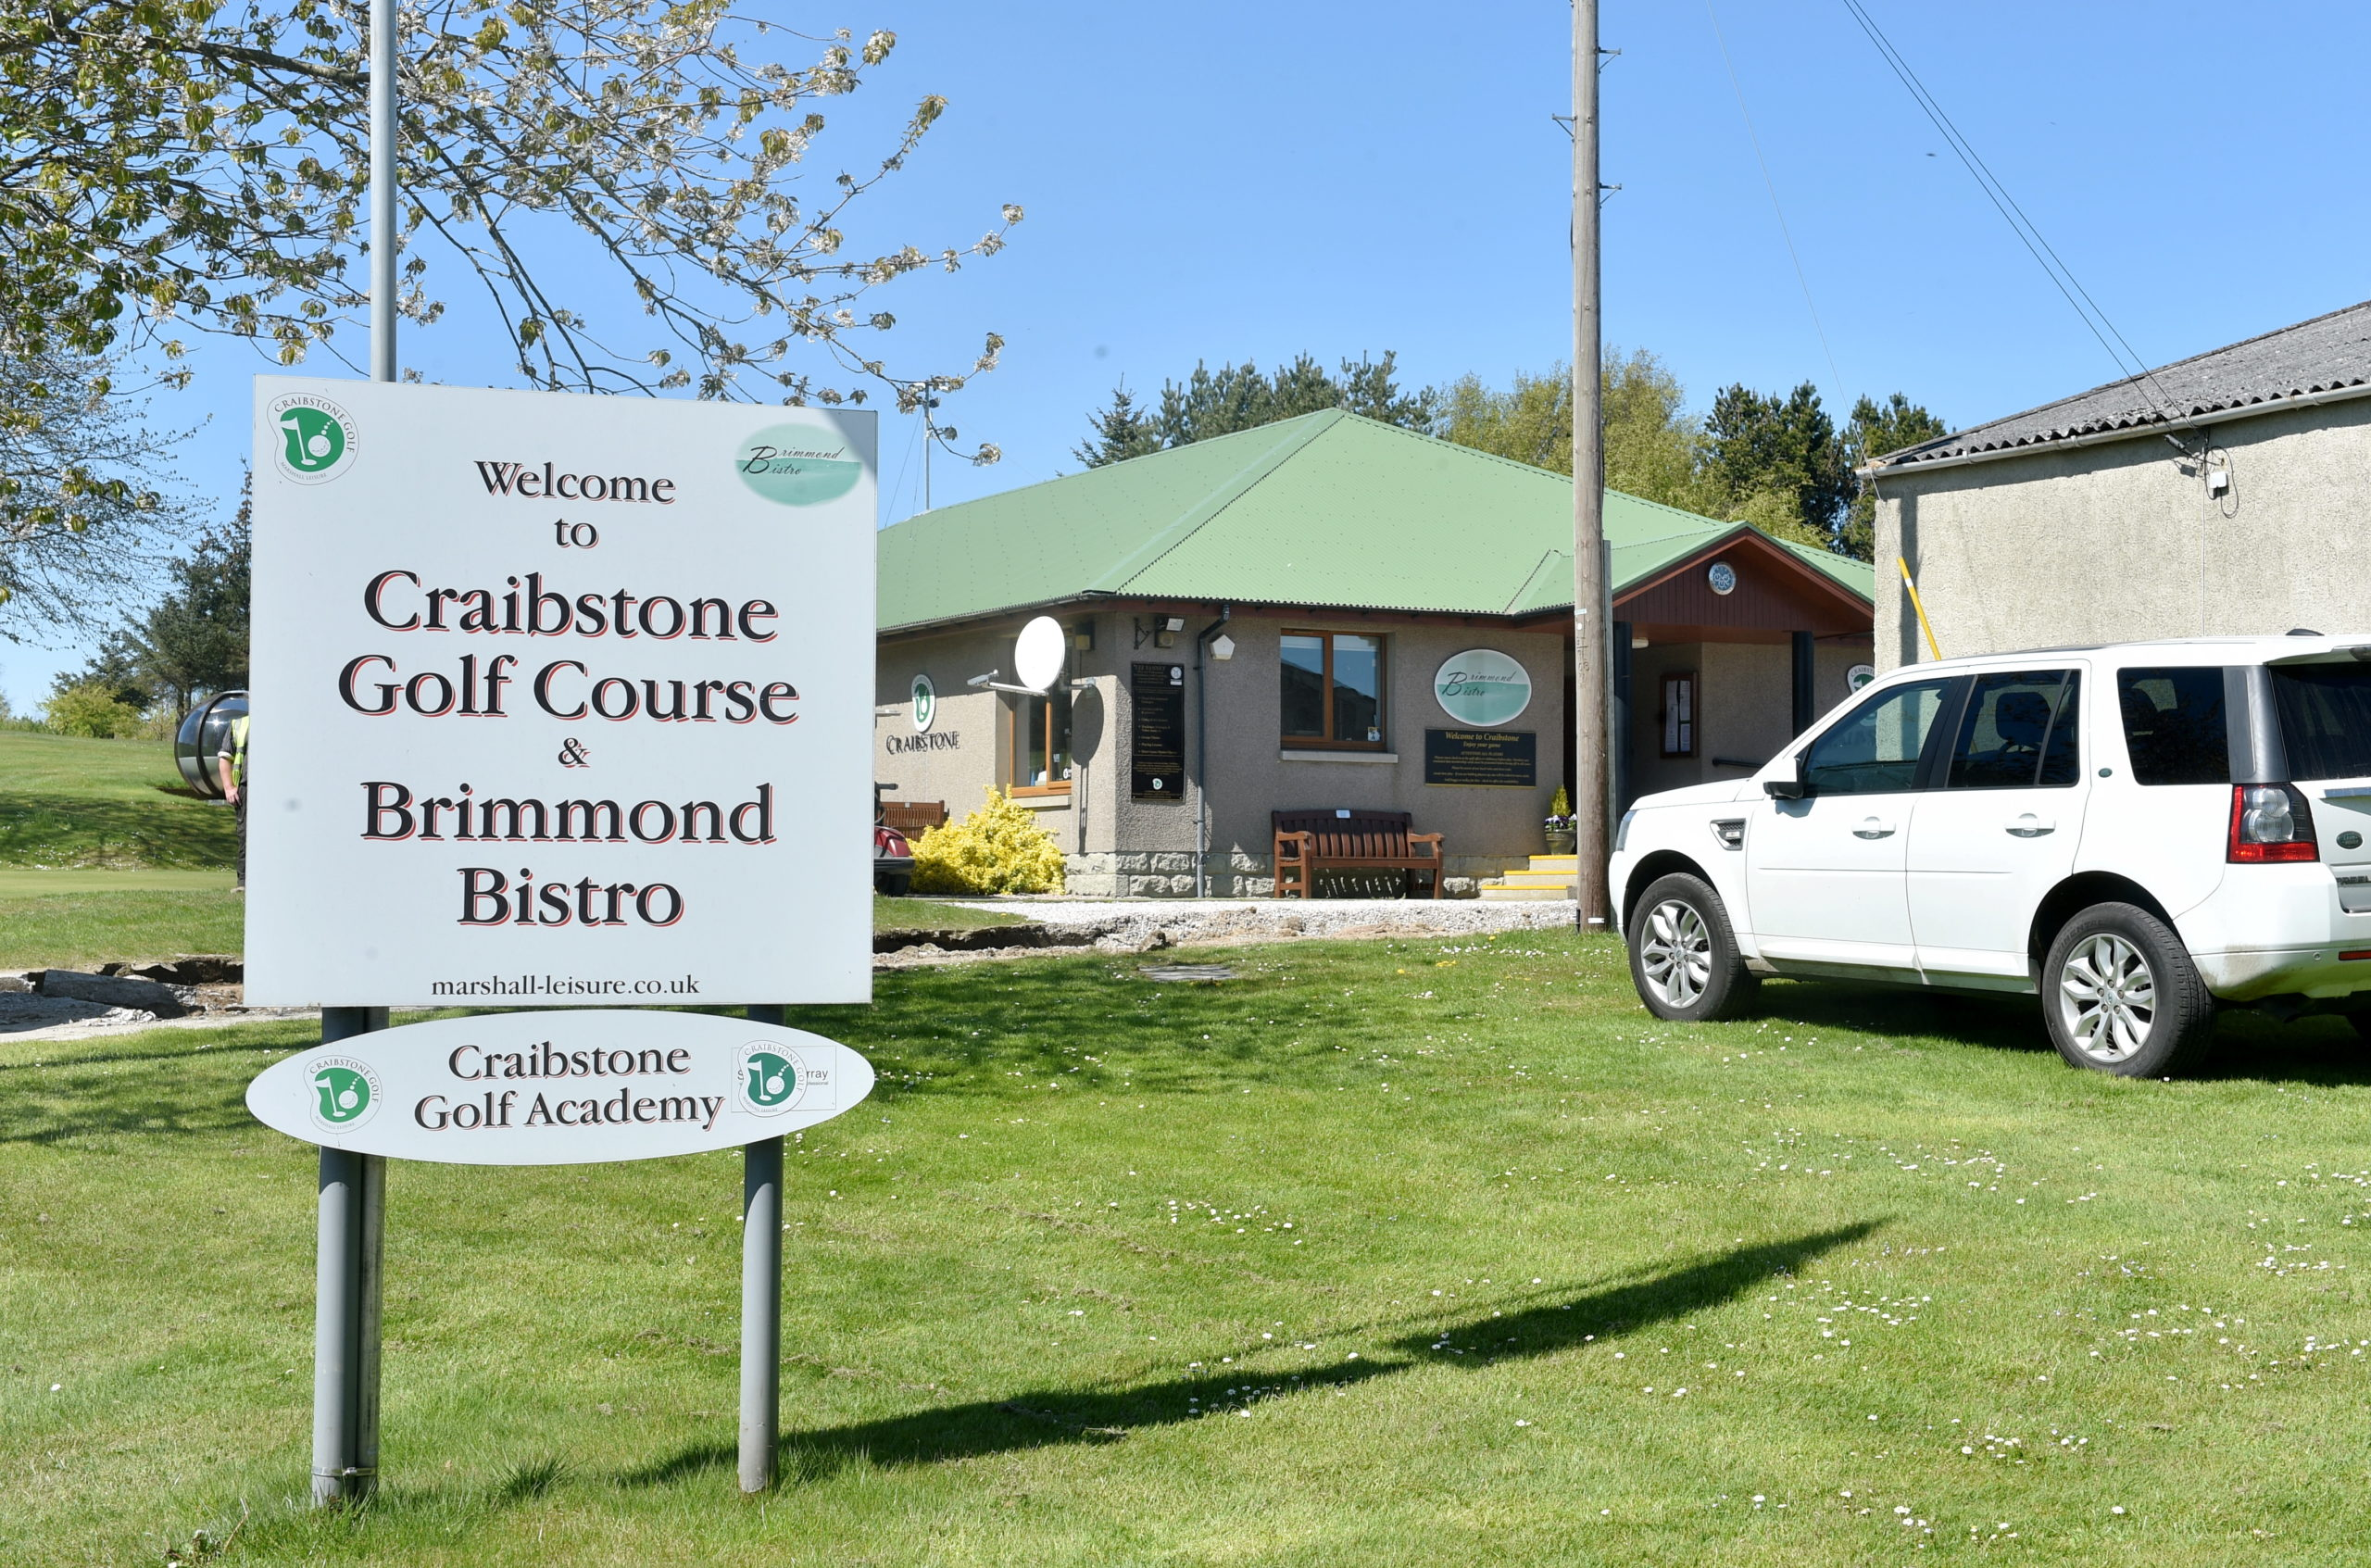 Craibstone Golf Course hopes to build a driving range